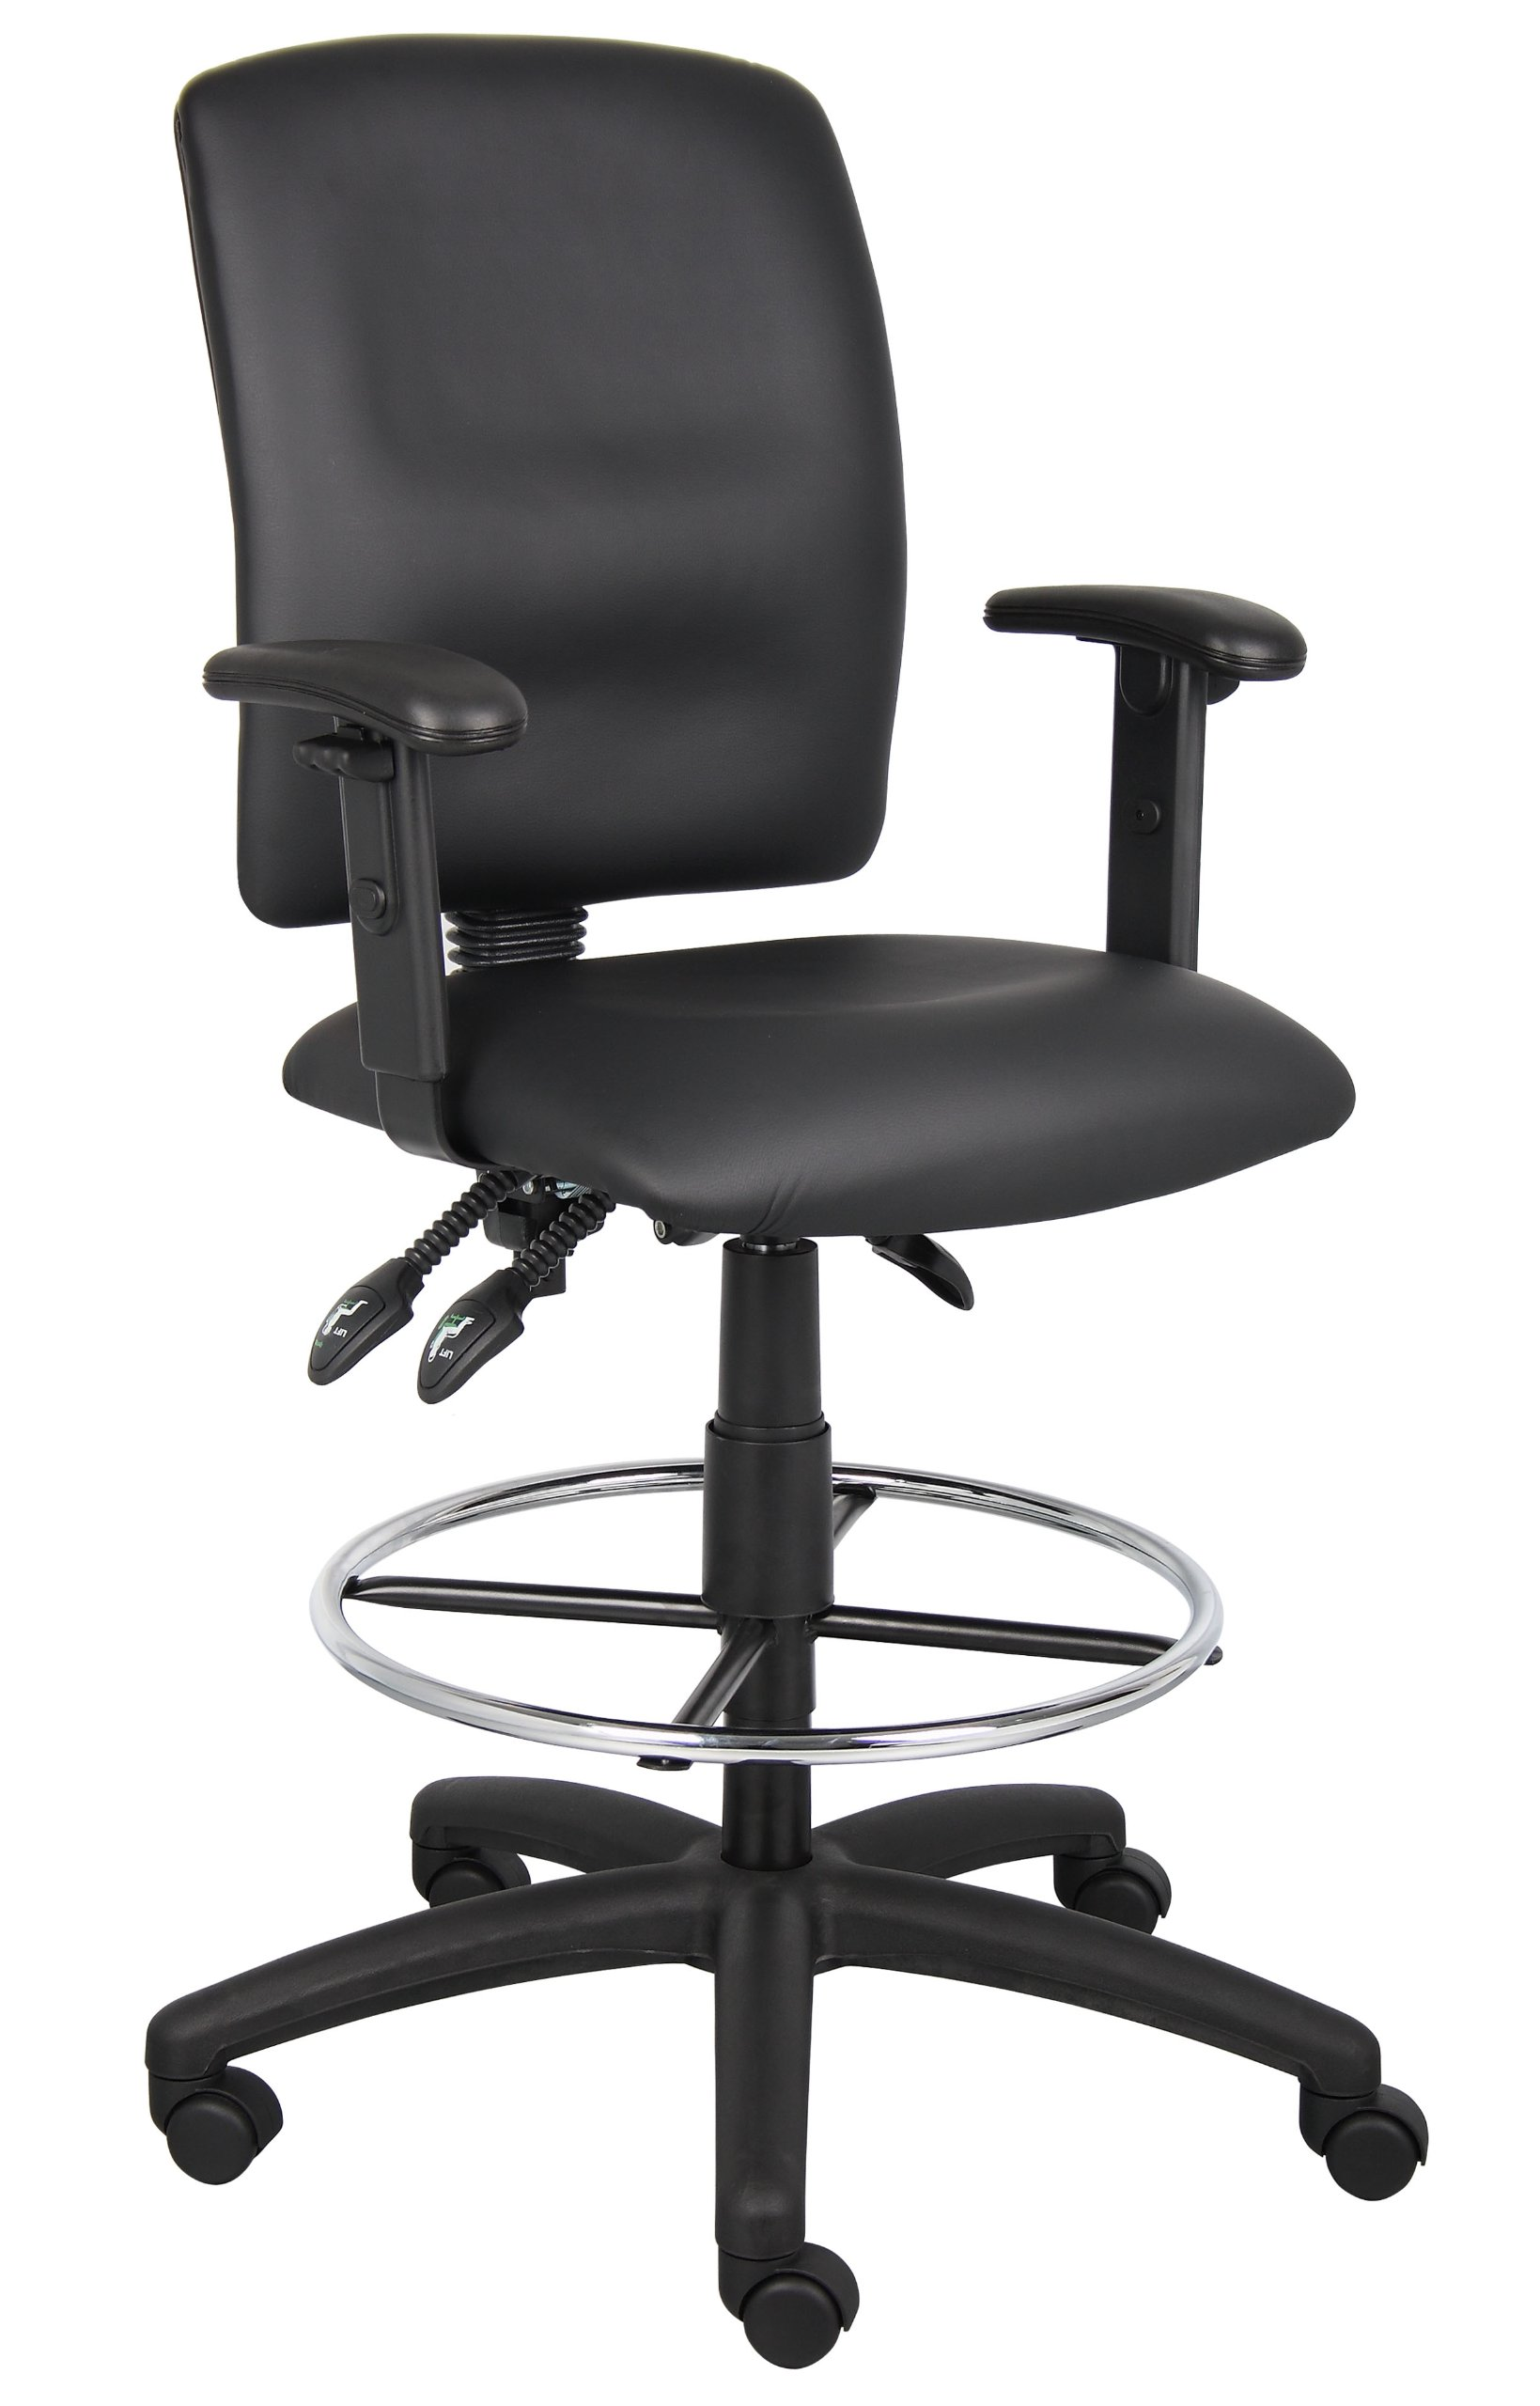 Boss Office Products B1646 Multi-Function LeatherPlus Drafting Stool with Adjustable Arms in Black by Boss Office Products